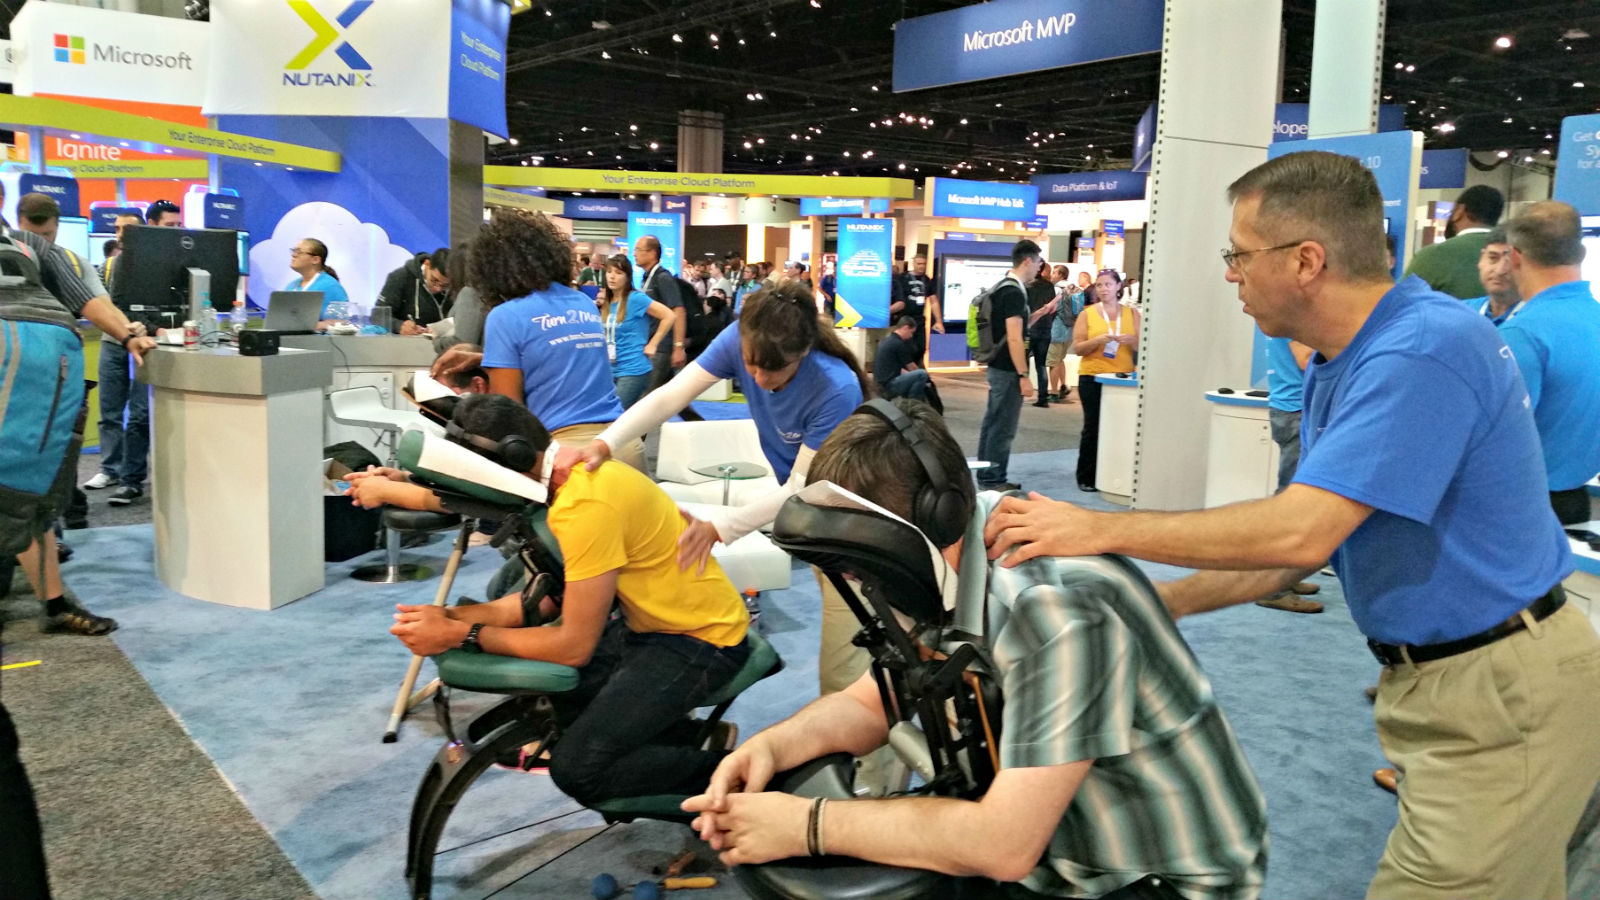 Chair massage at trade shows in Atlanta, GA by Turn 2 Massage